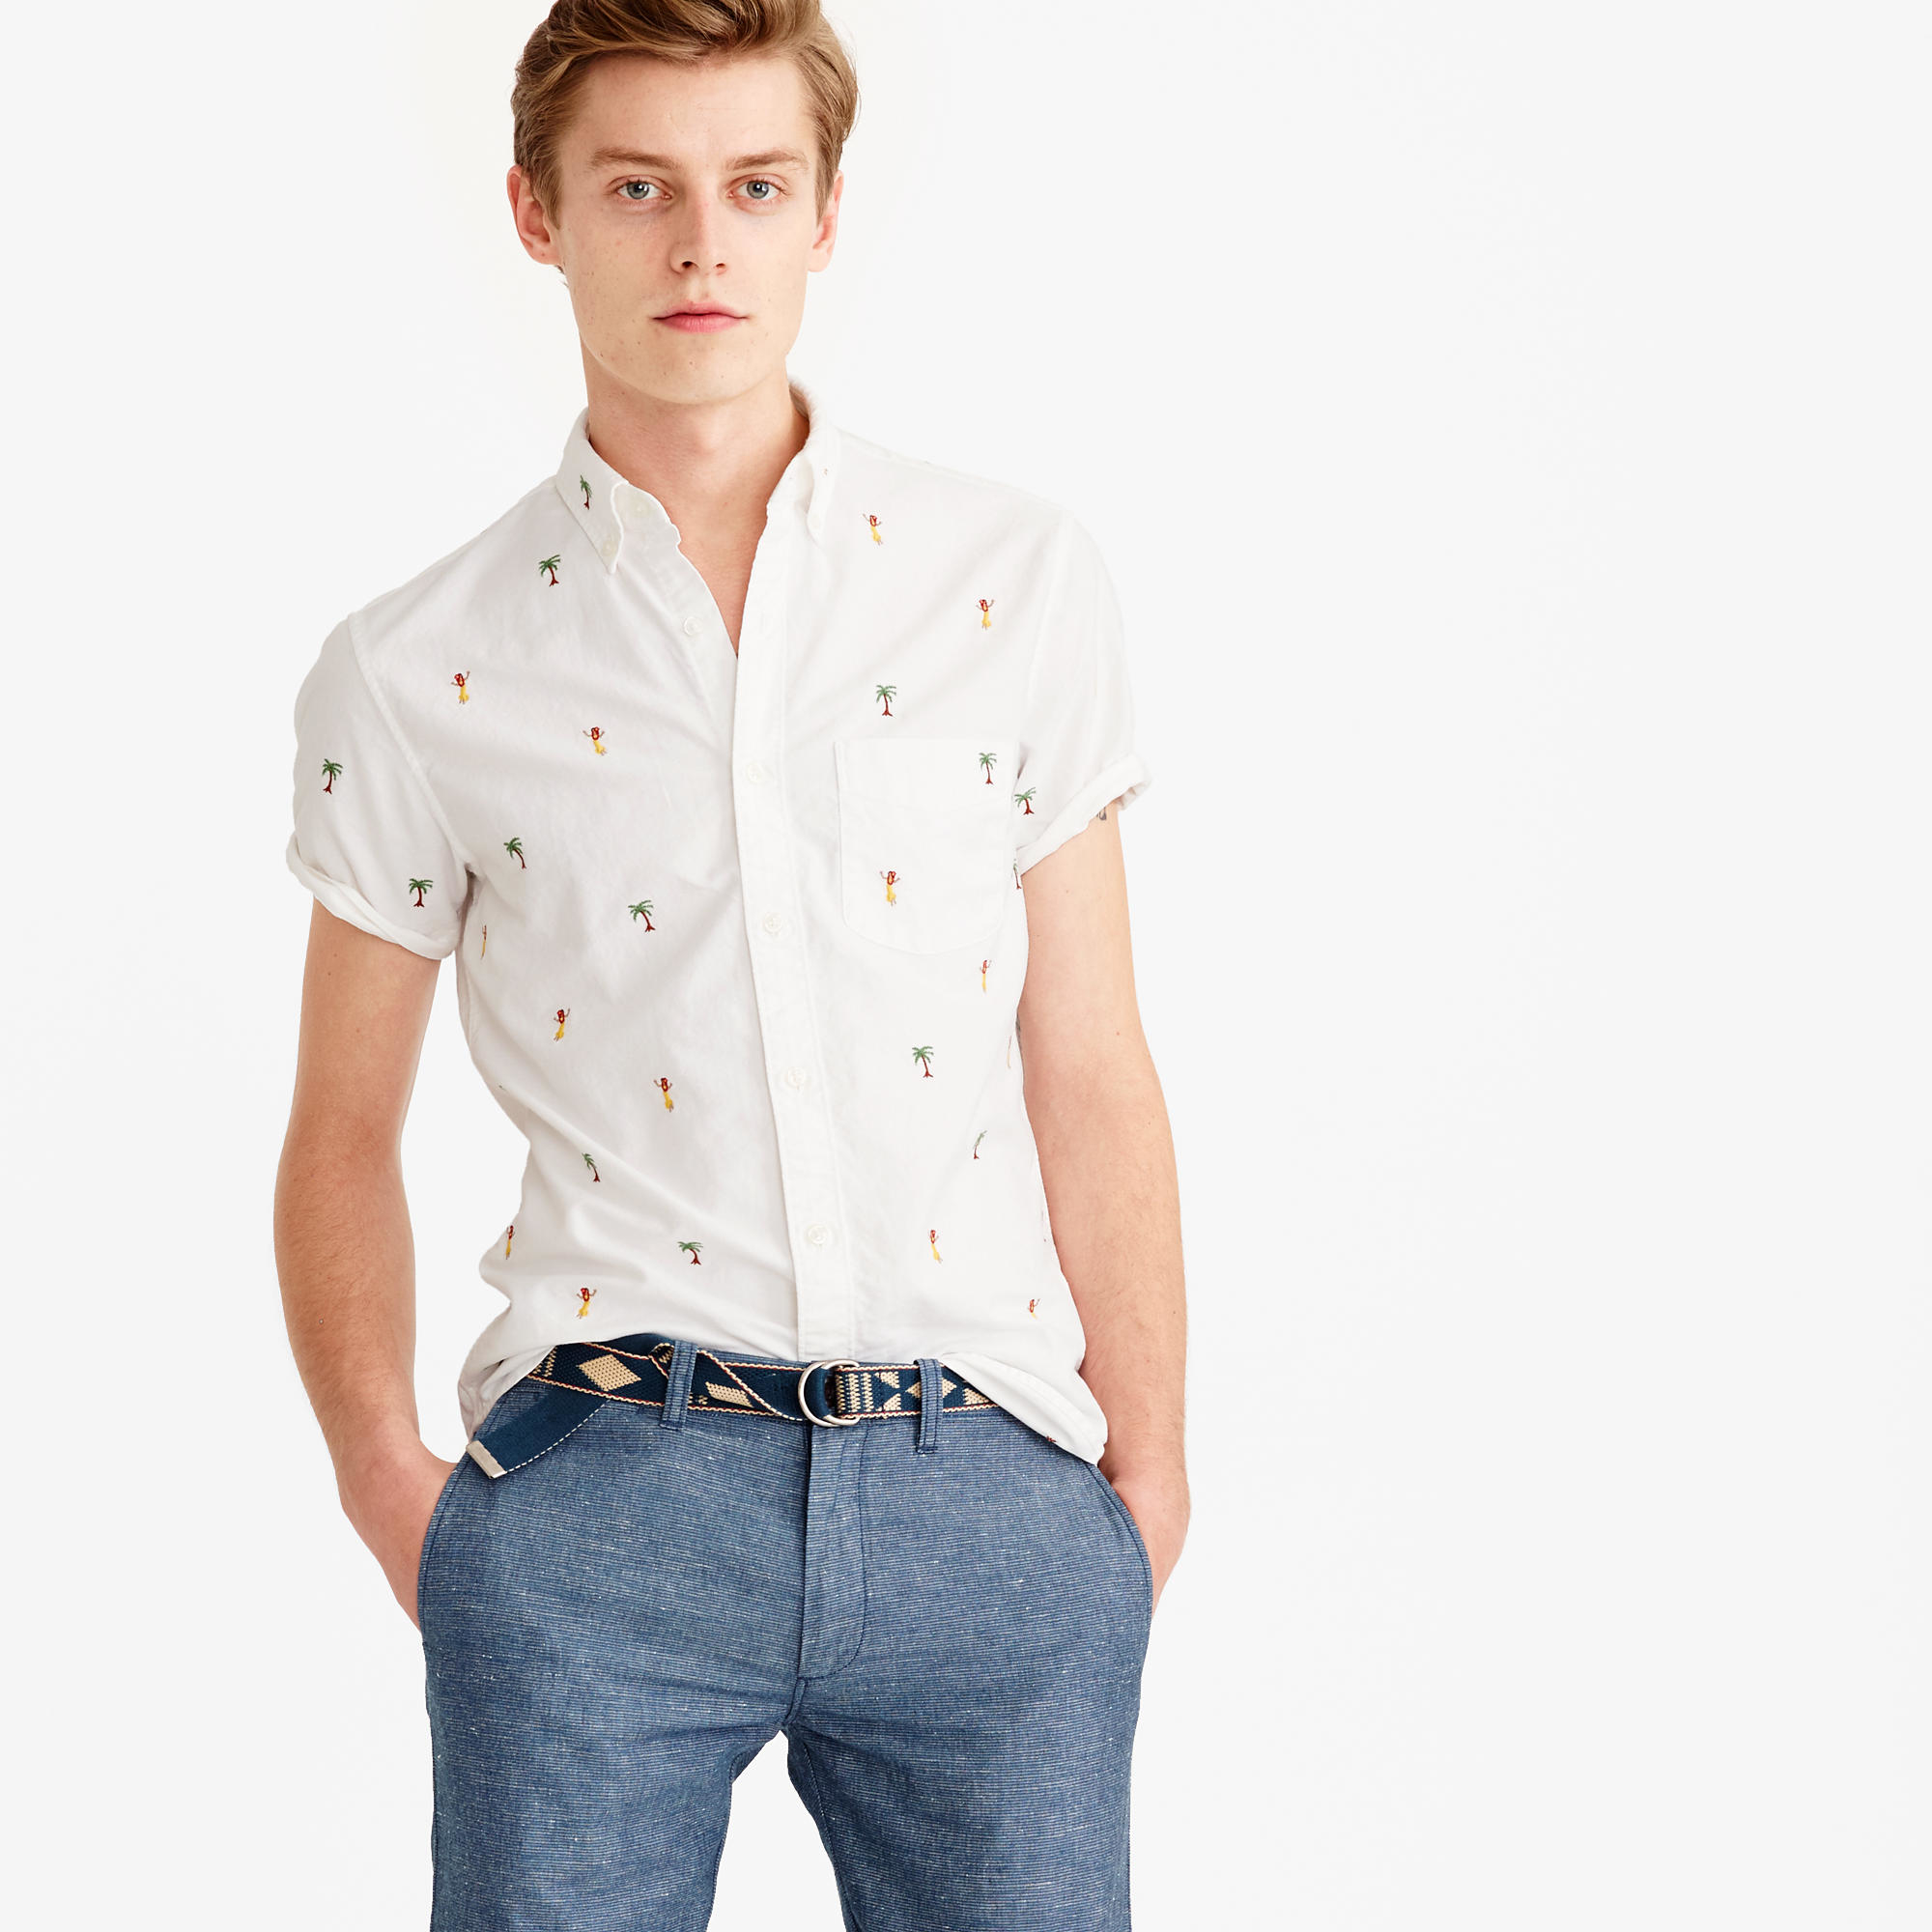 Lyst Jew Short Sleeve Oxford Shirt With Embroidered Palm Trees